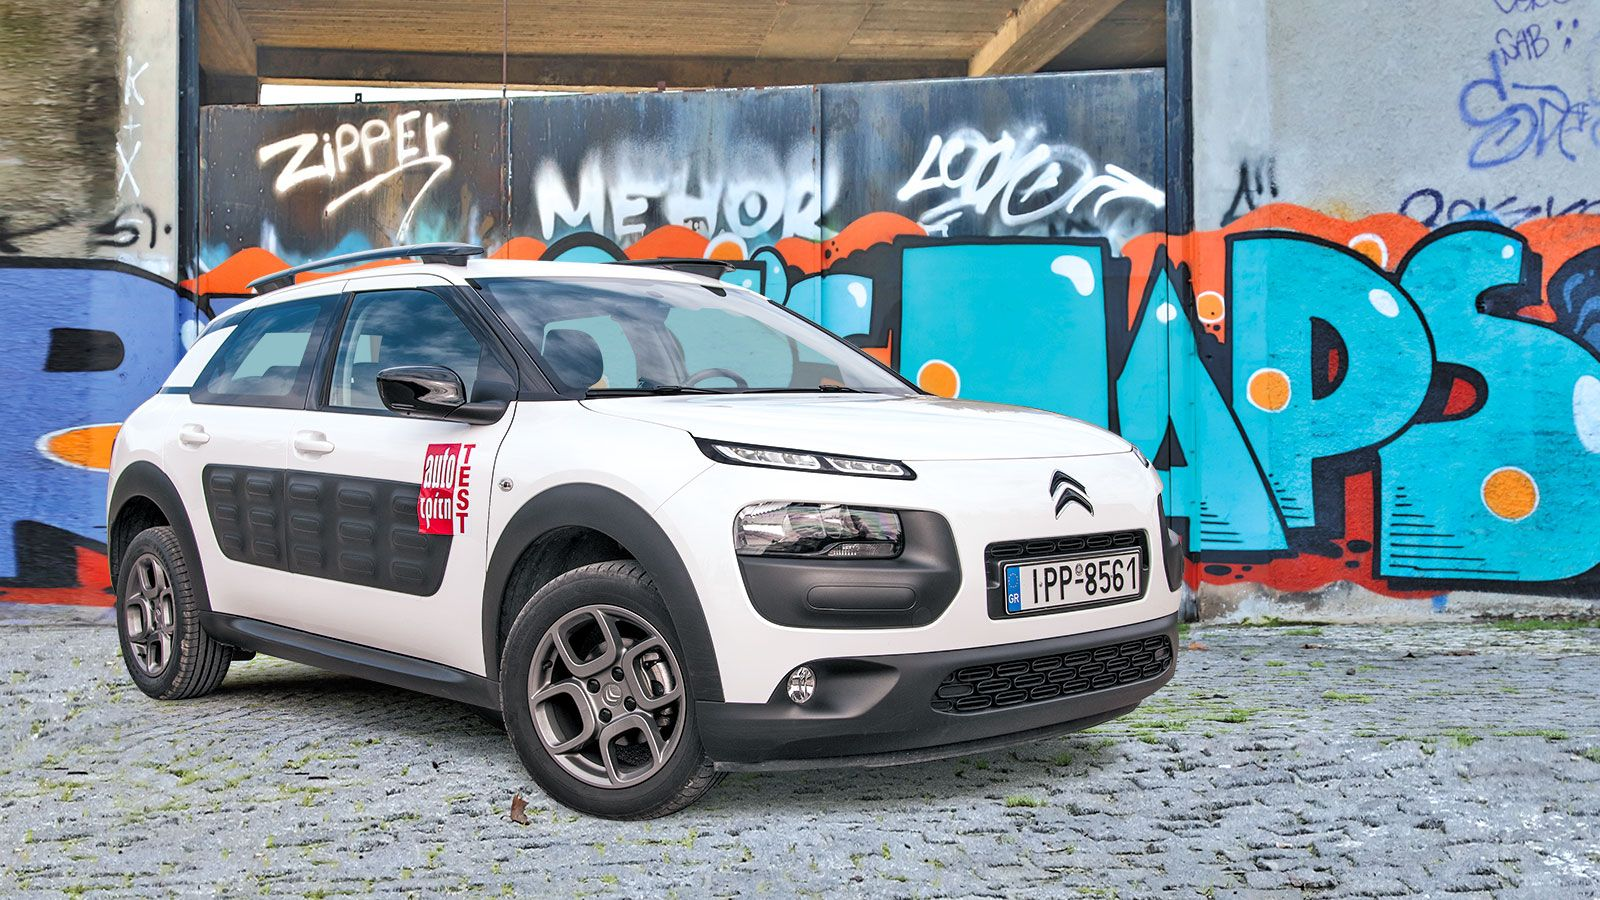 test c4 cactus 1 2 citroen citroen c4 cactus. Black Bedroom Furniture Sets. Home Design Ideas